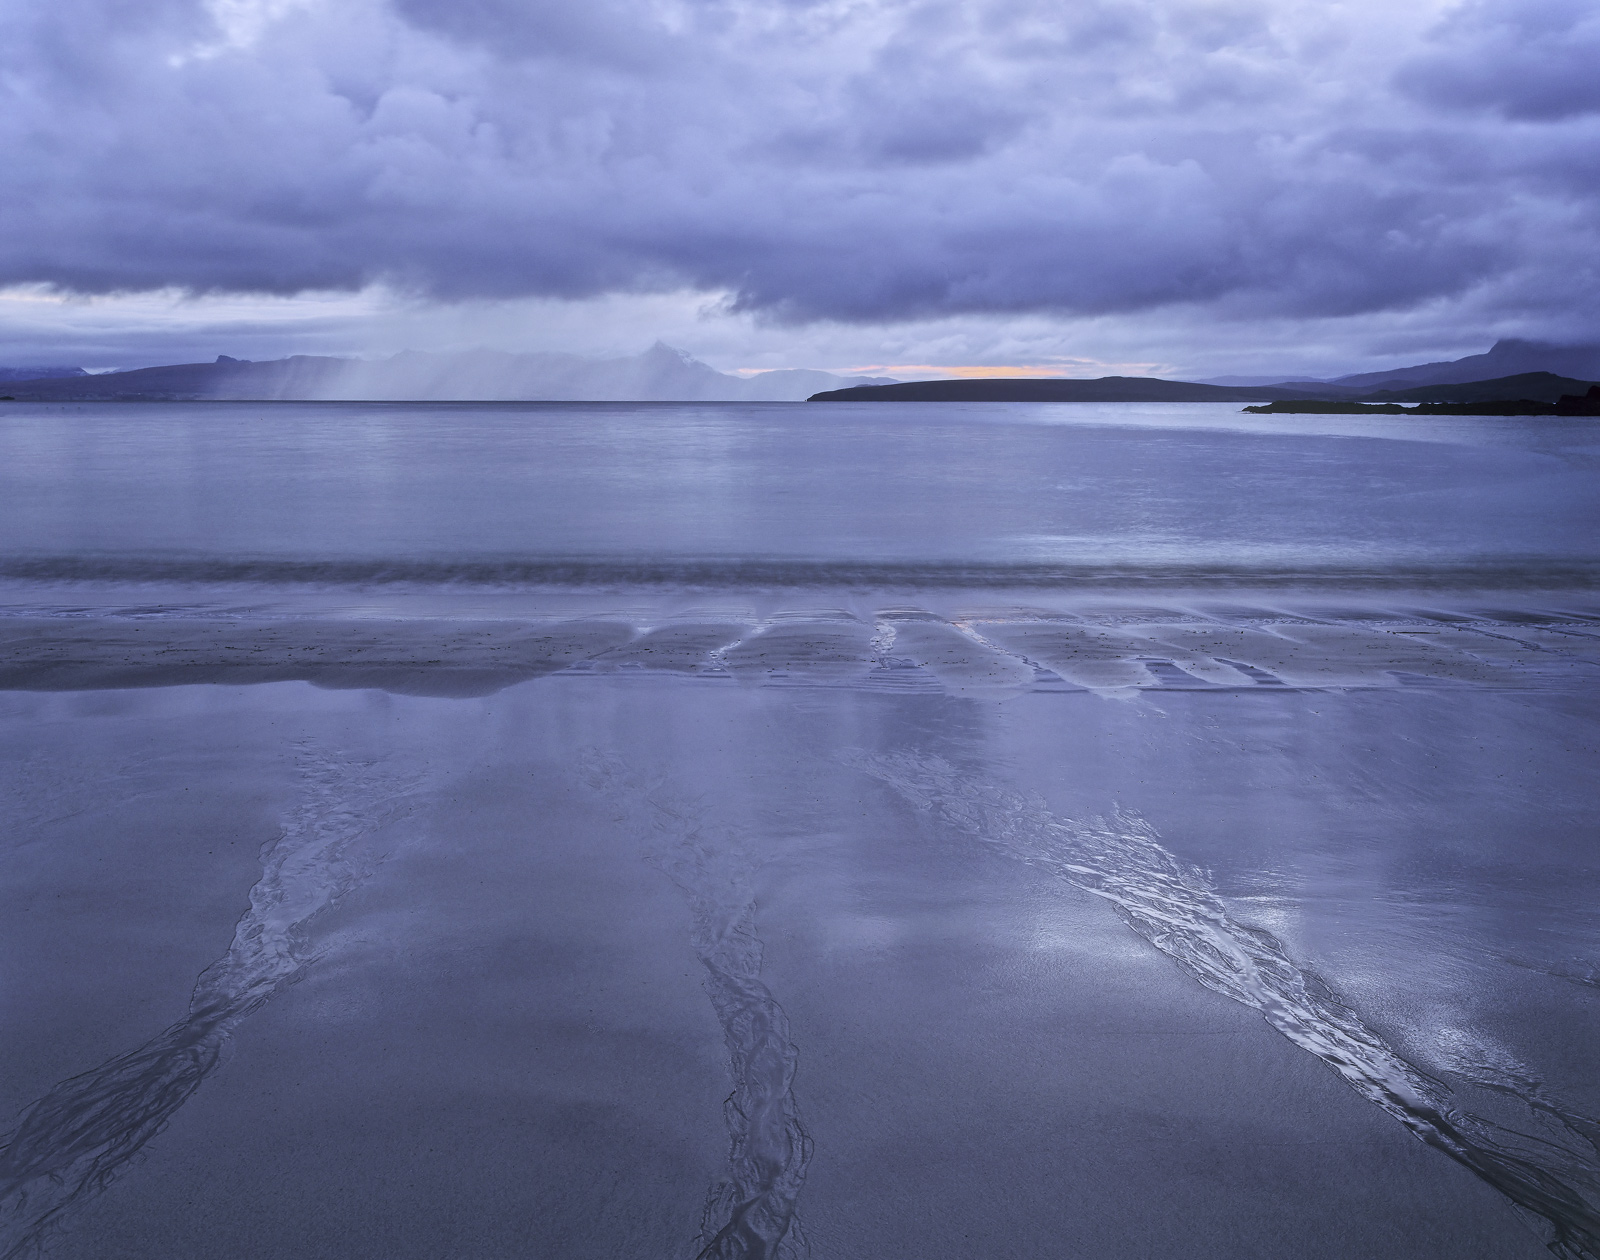 The beautiful steely blue of twilight 40 minutes or so before sunrise hung over my favourite mainland Scottish beach, Mellon...